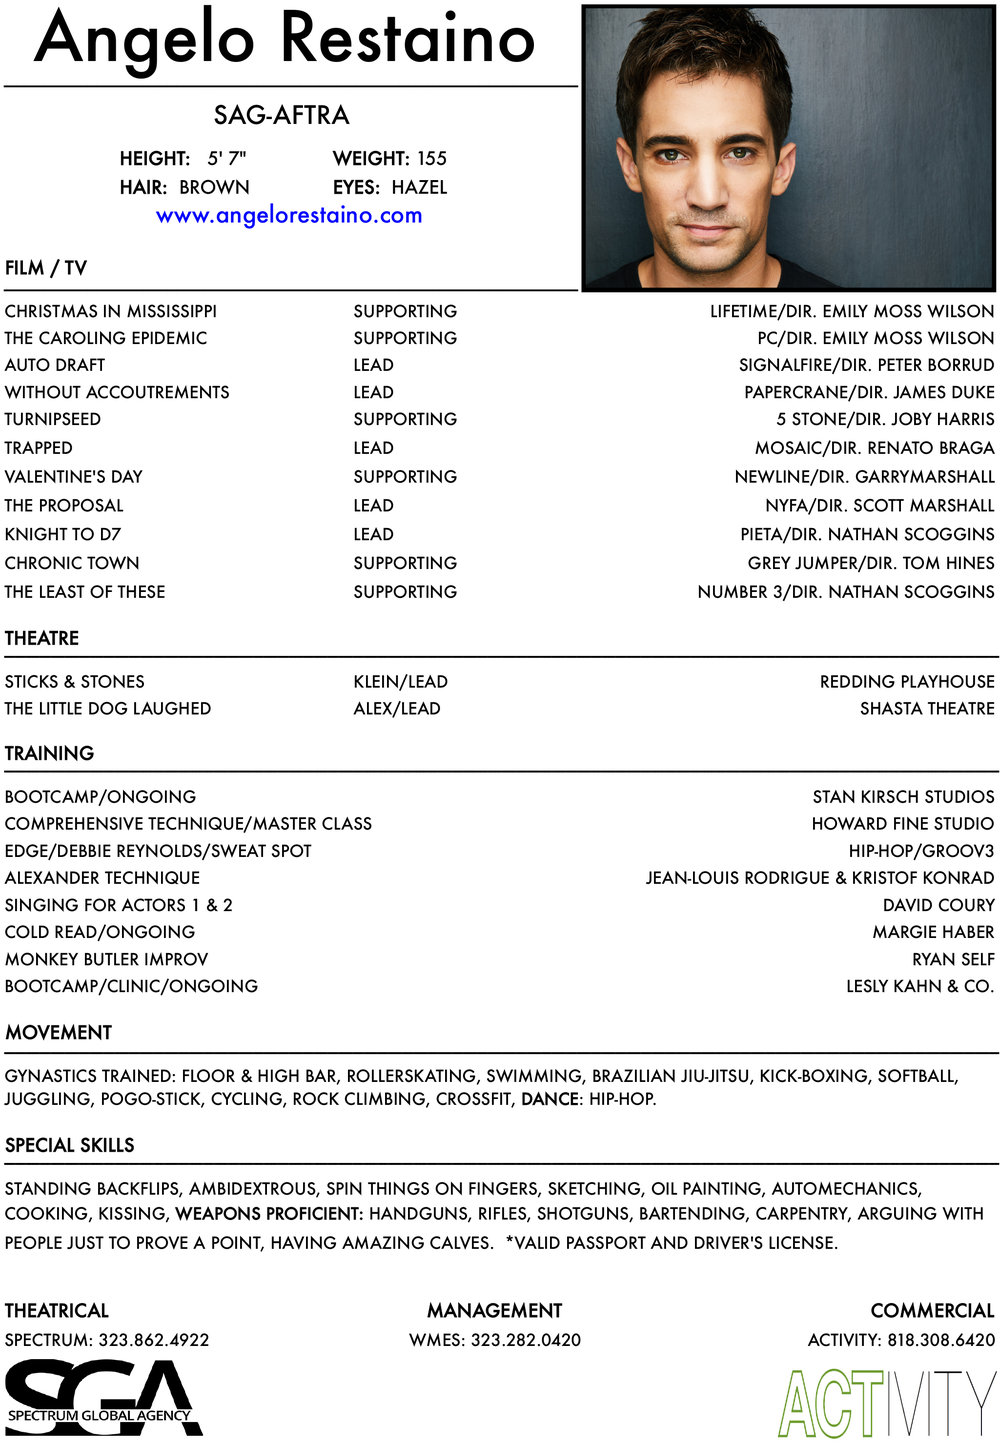 ANGELO'S RESUME 5.27.18.jpg